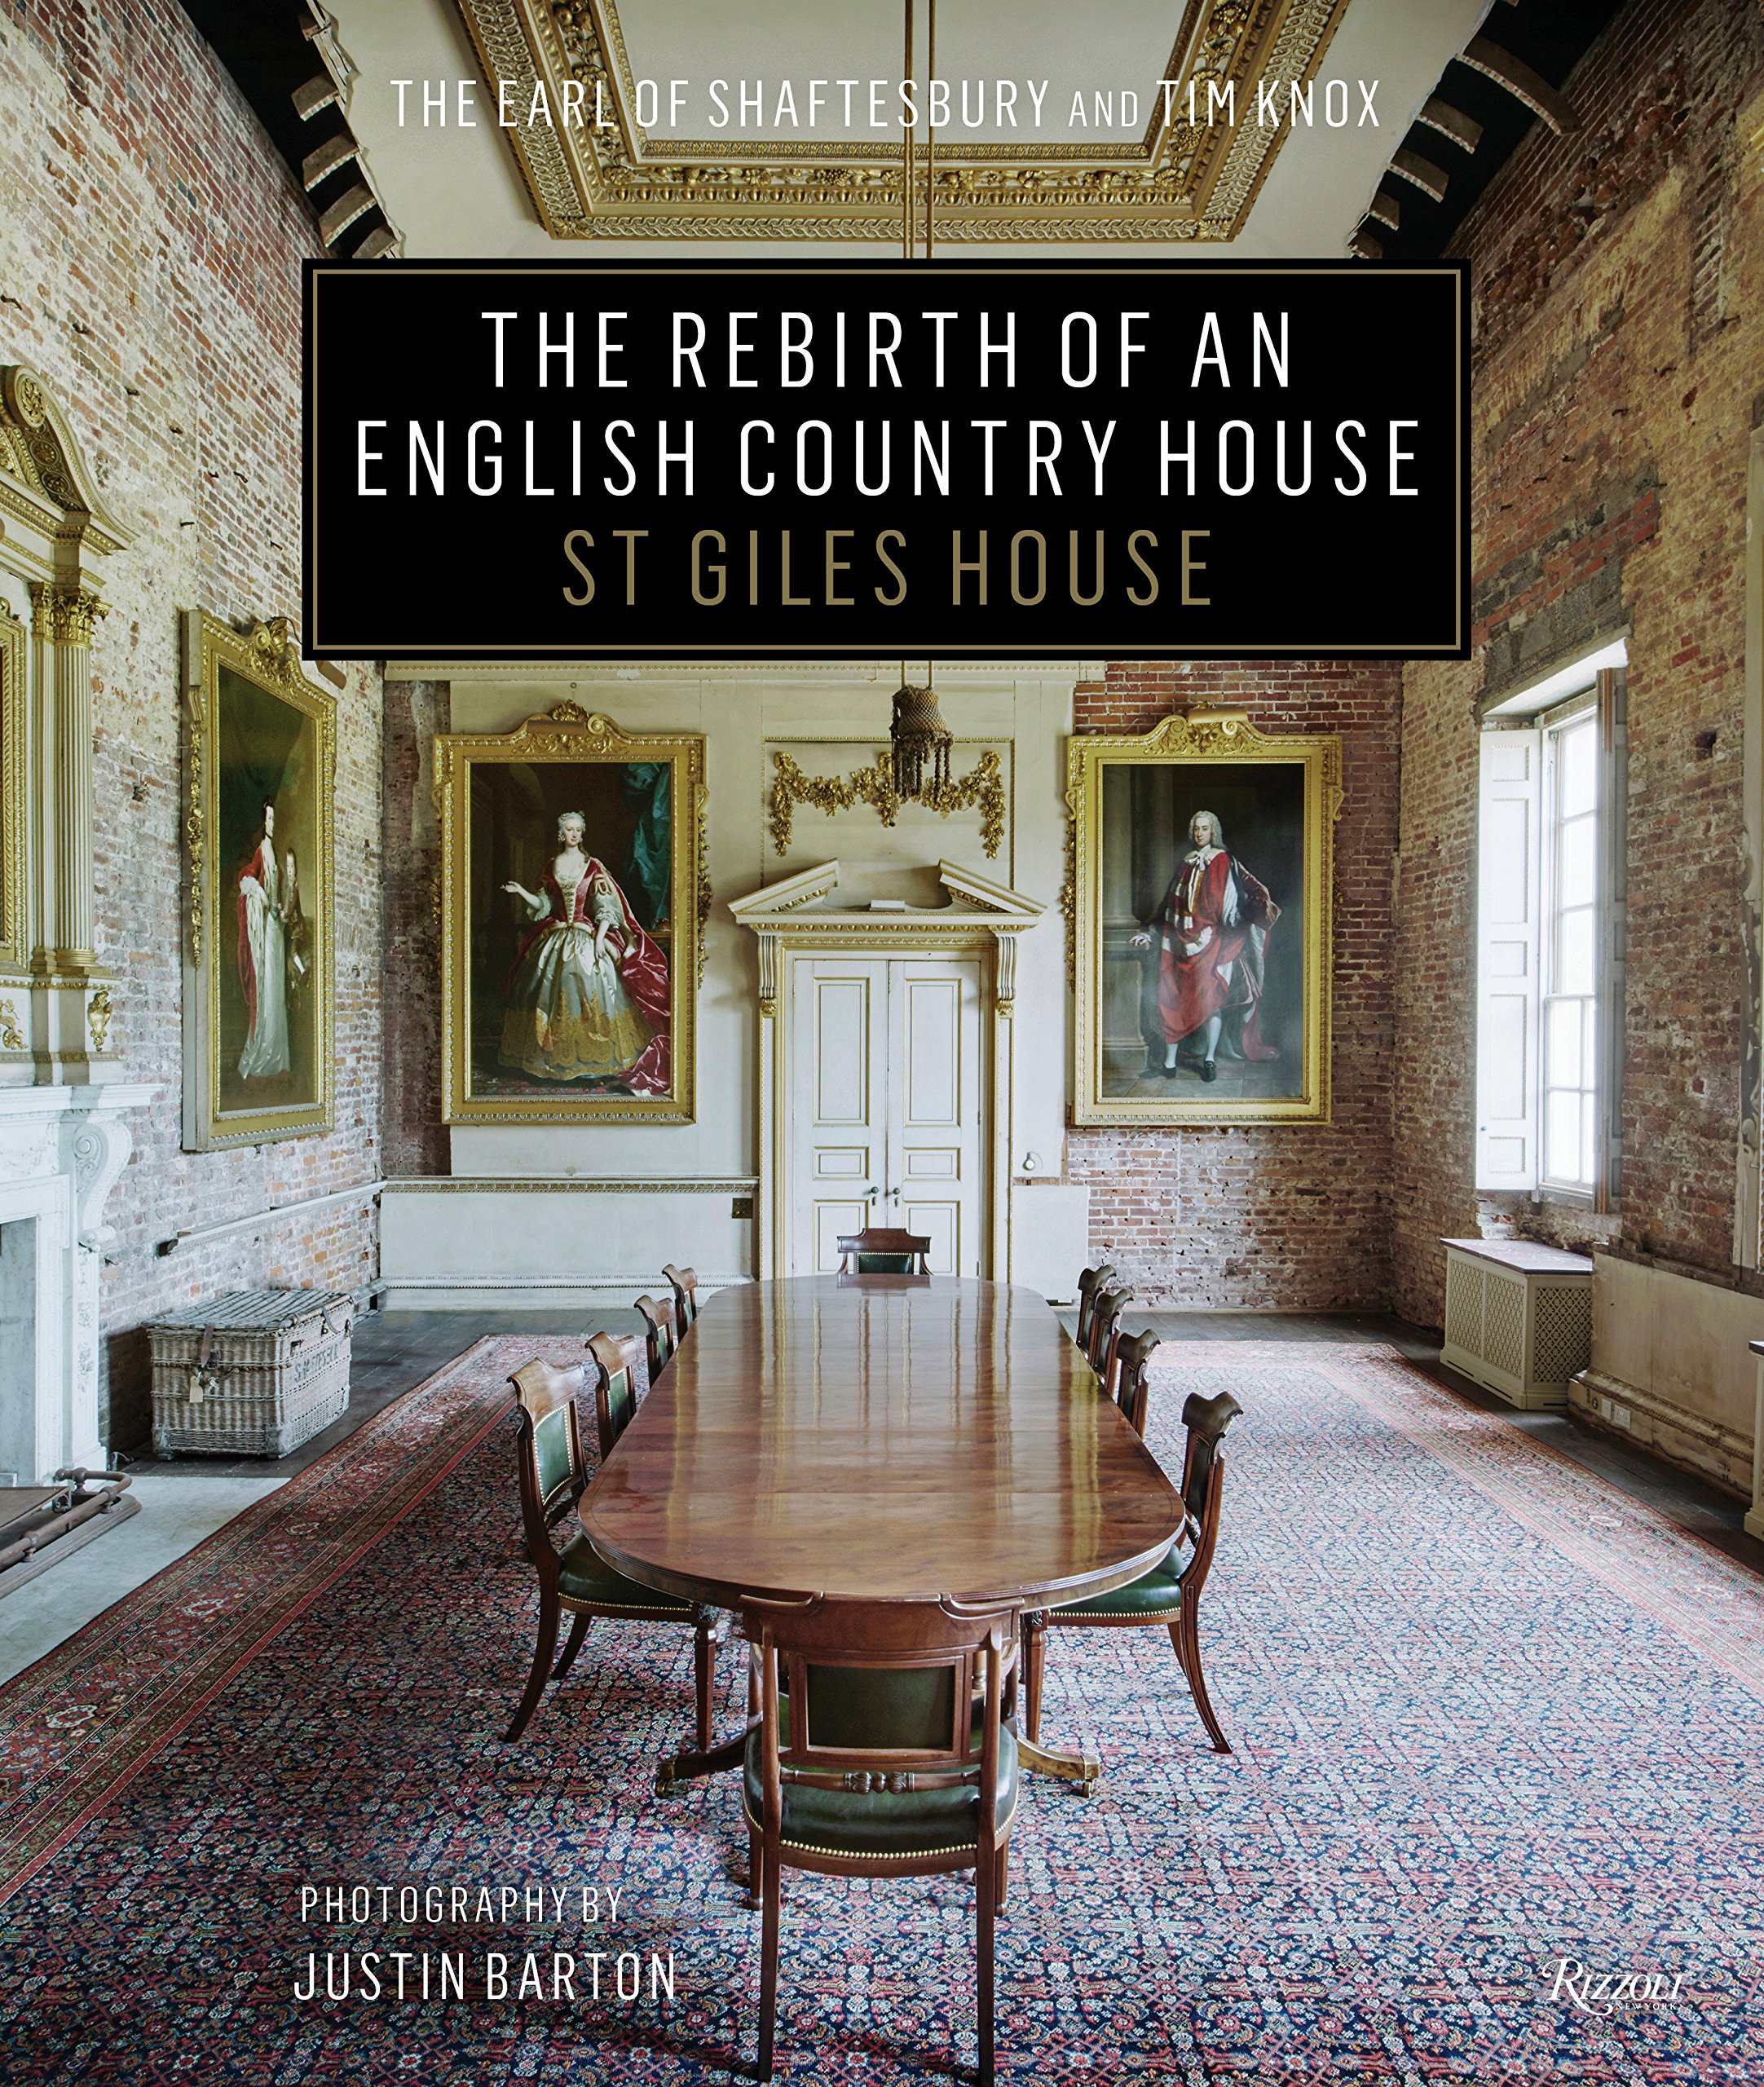 The Rebirth of an English Country House: St Giles House by Rizzoli